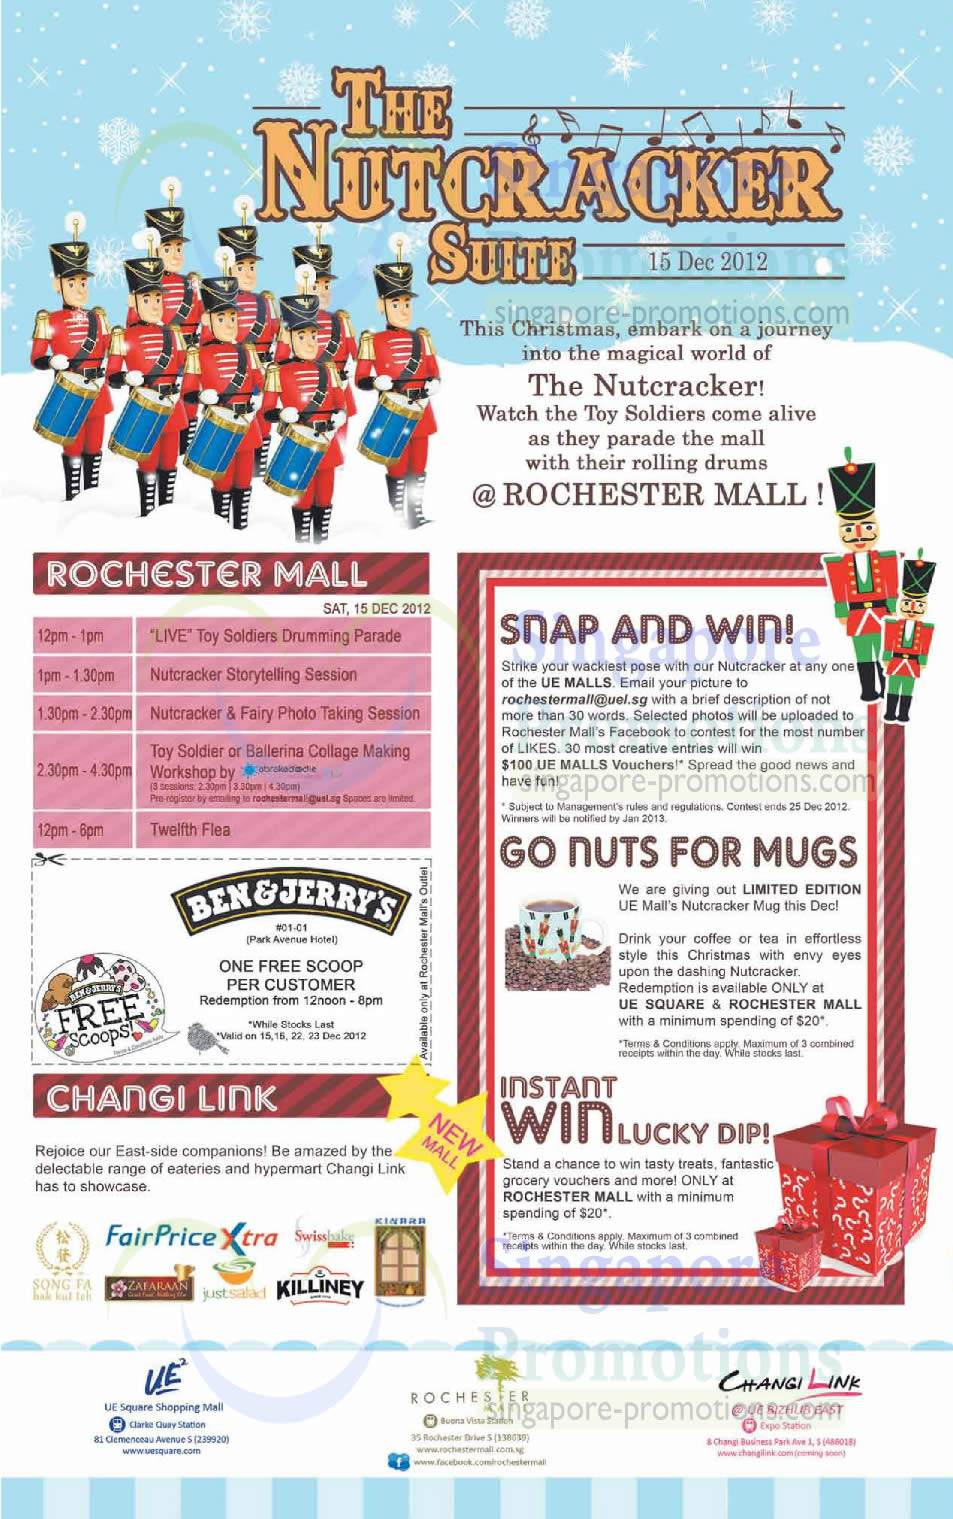 Activities, Snap n Win, Go Nuts For Mugs, Lucky Dip